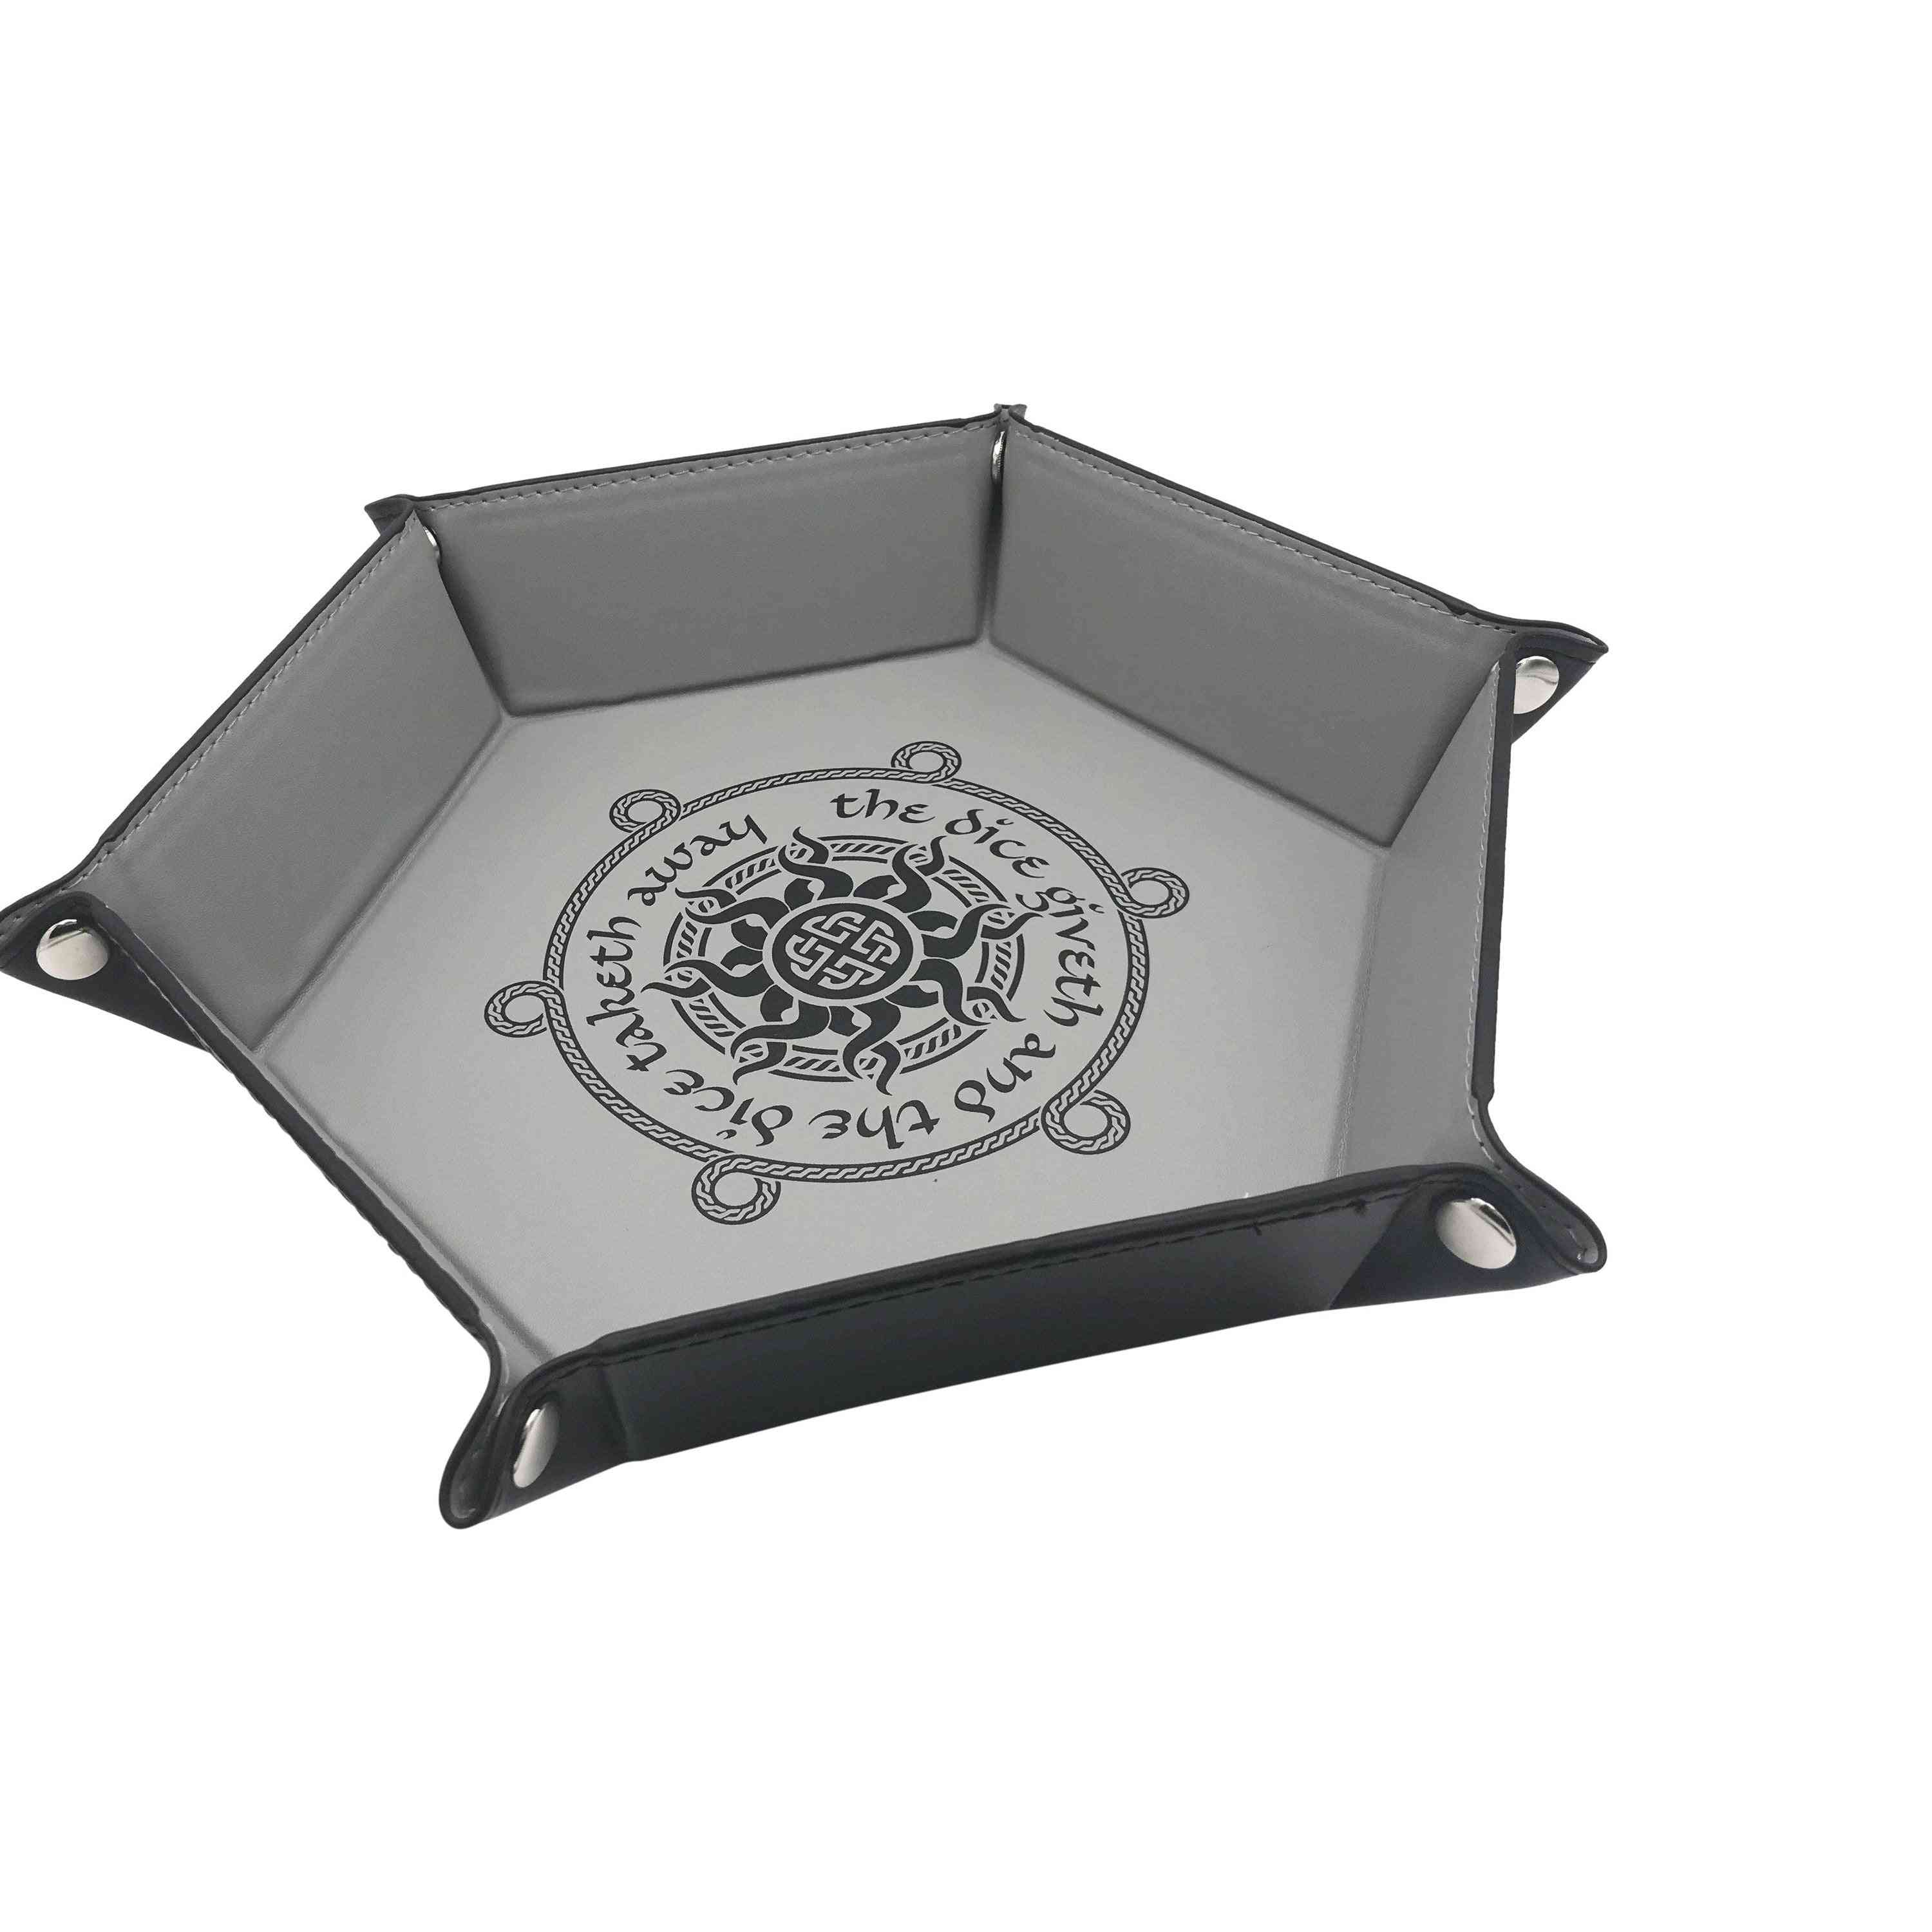 Dice Giveth Collapsible 6 Sided Dice Tray